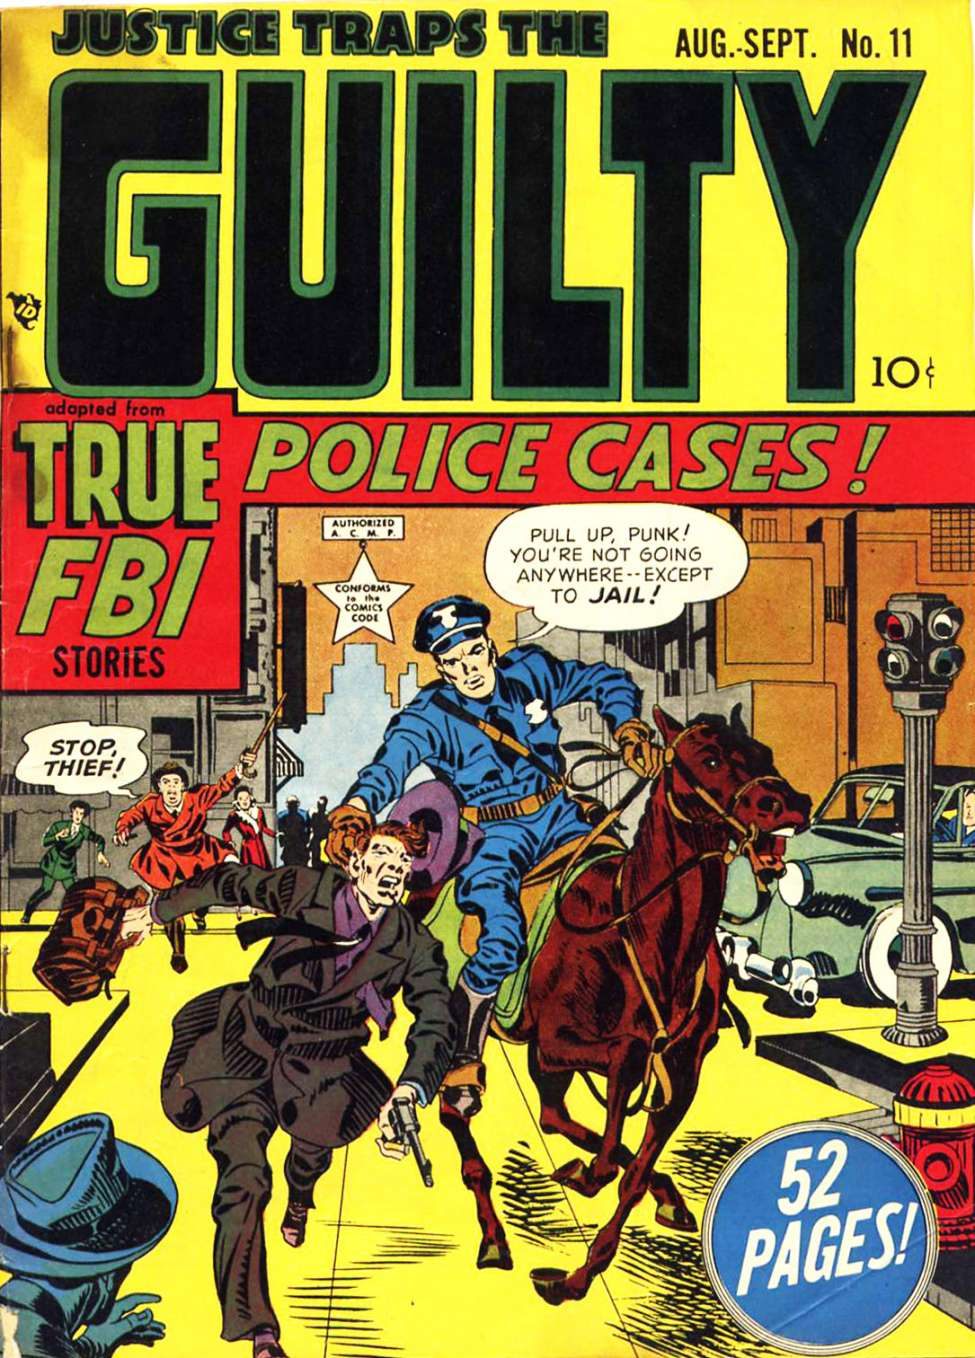 Comic Book Cover For Justice Traps the Guilty v2 5 (11)